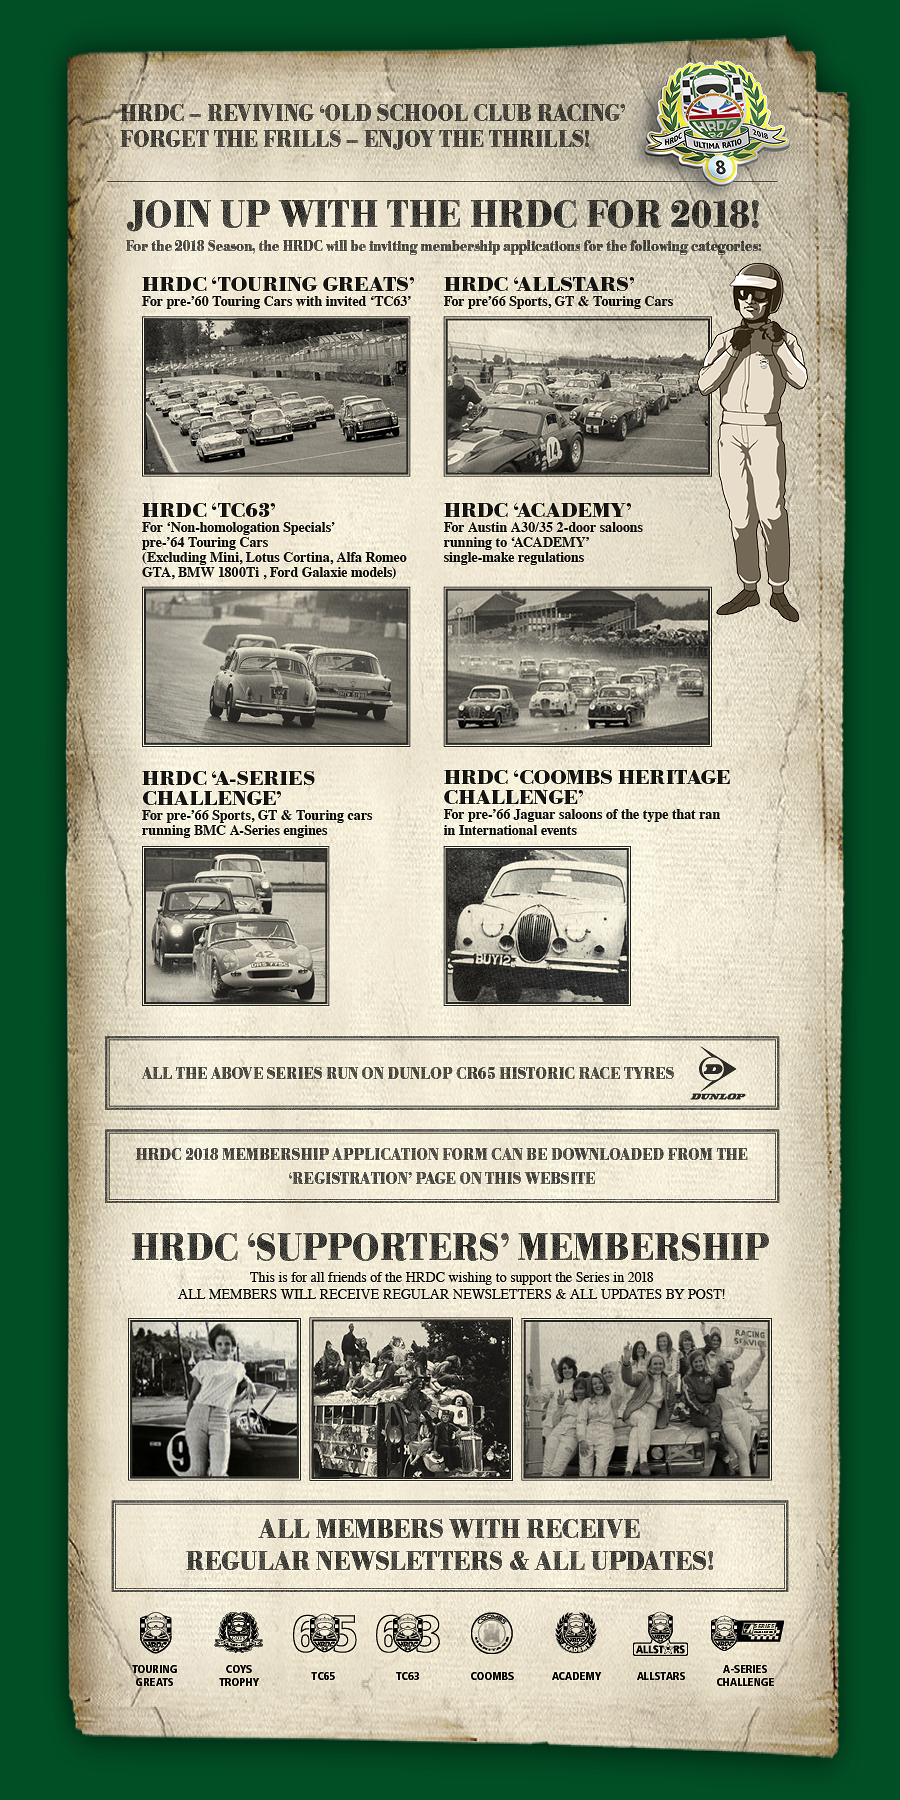 Join up with HRDC for 2018